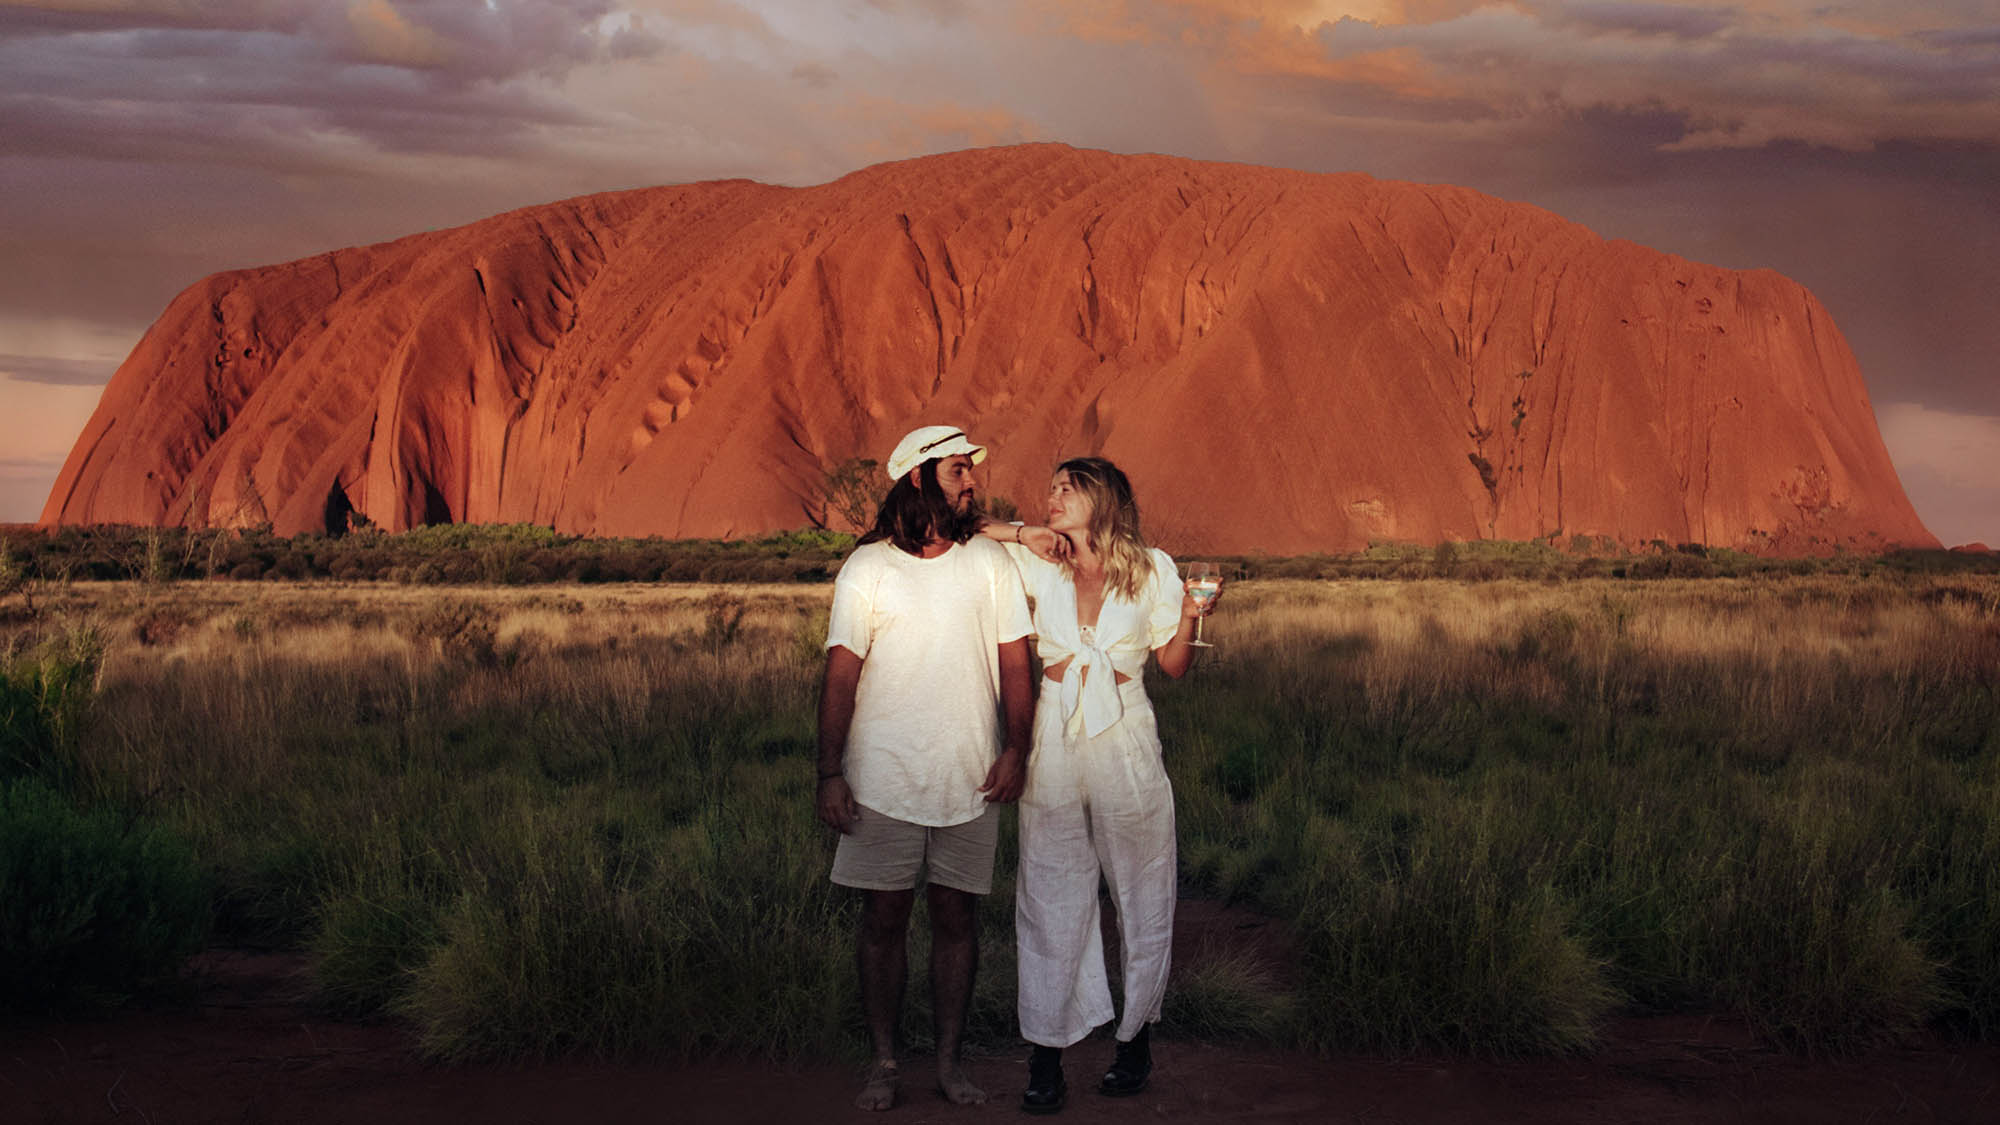 Red Centre Self Drive Alice Springs, Uluru & Kings Canyon - NT Now